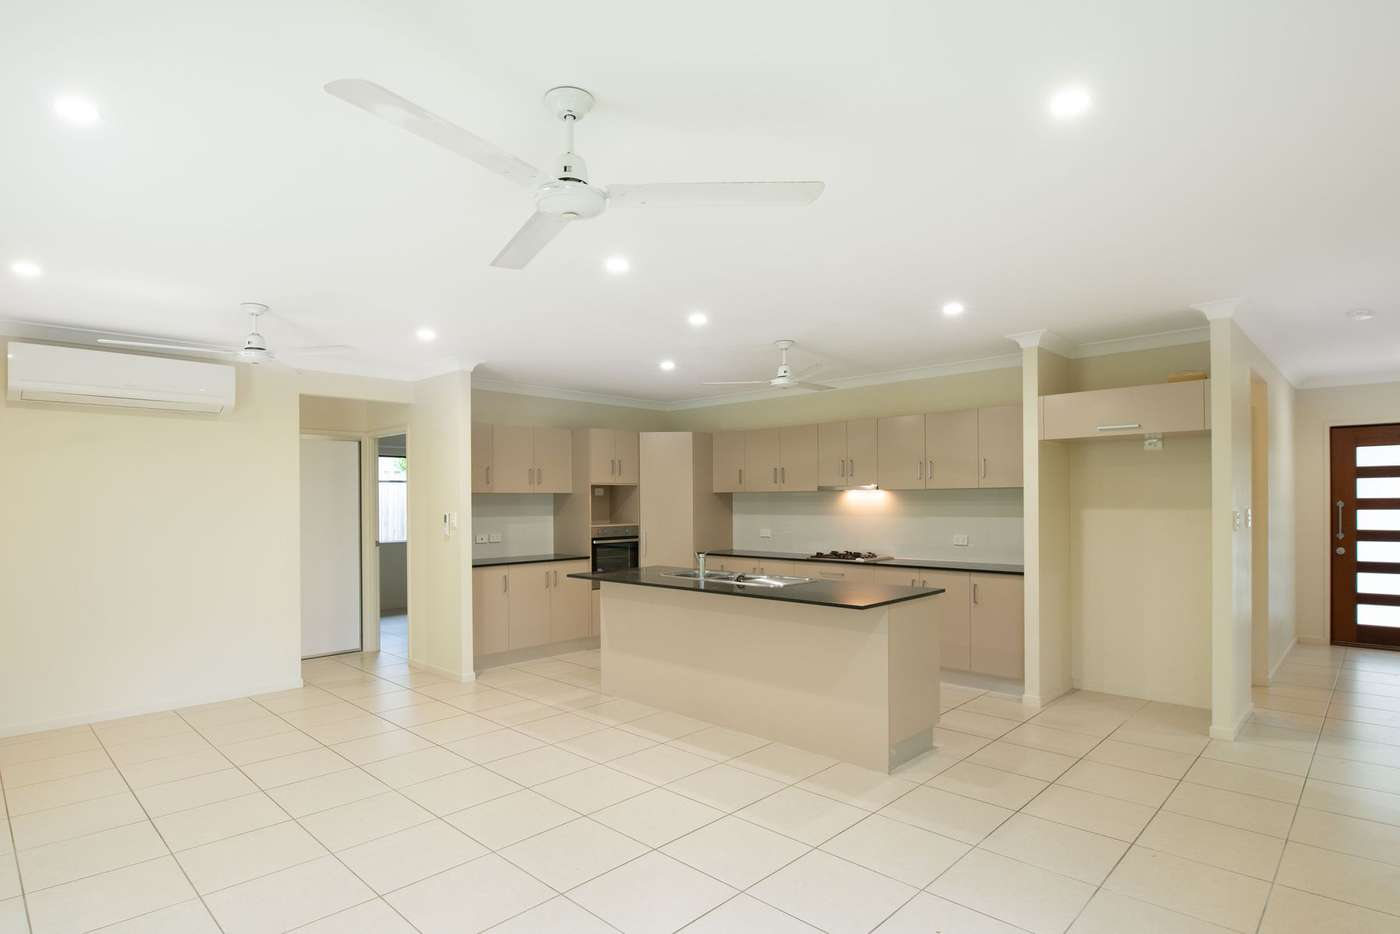 Seventh view of Homely house listing, 27 Ashwood Circuit, Smithfield QLD 4878